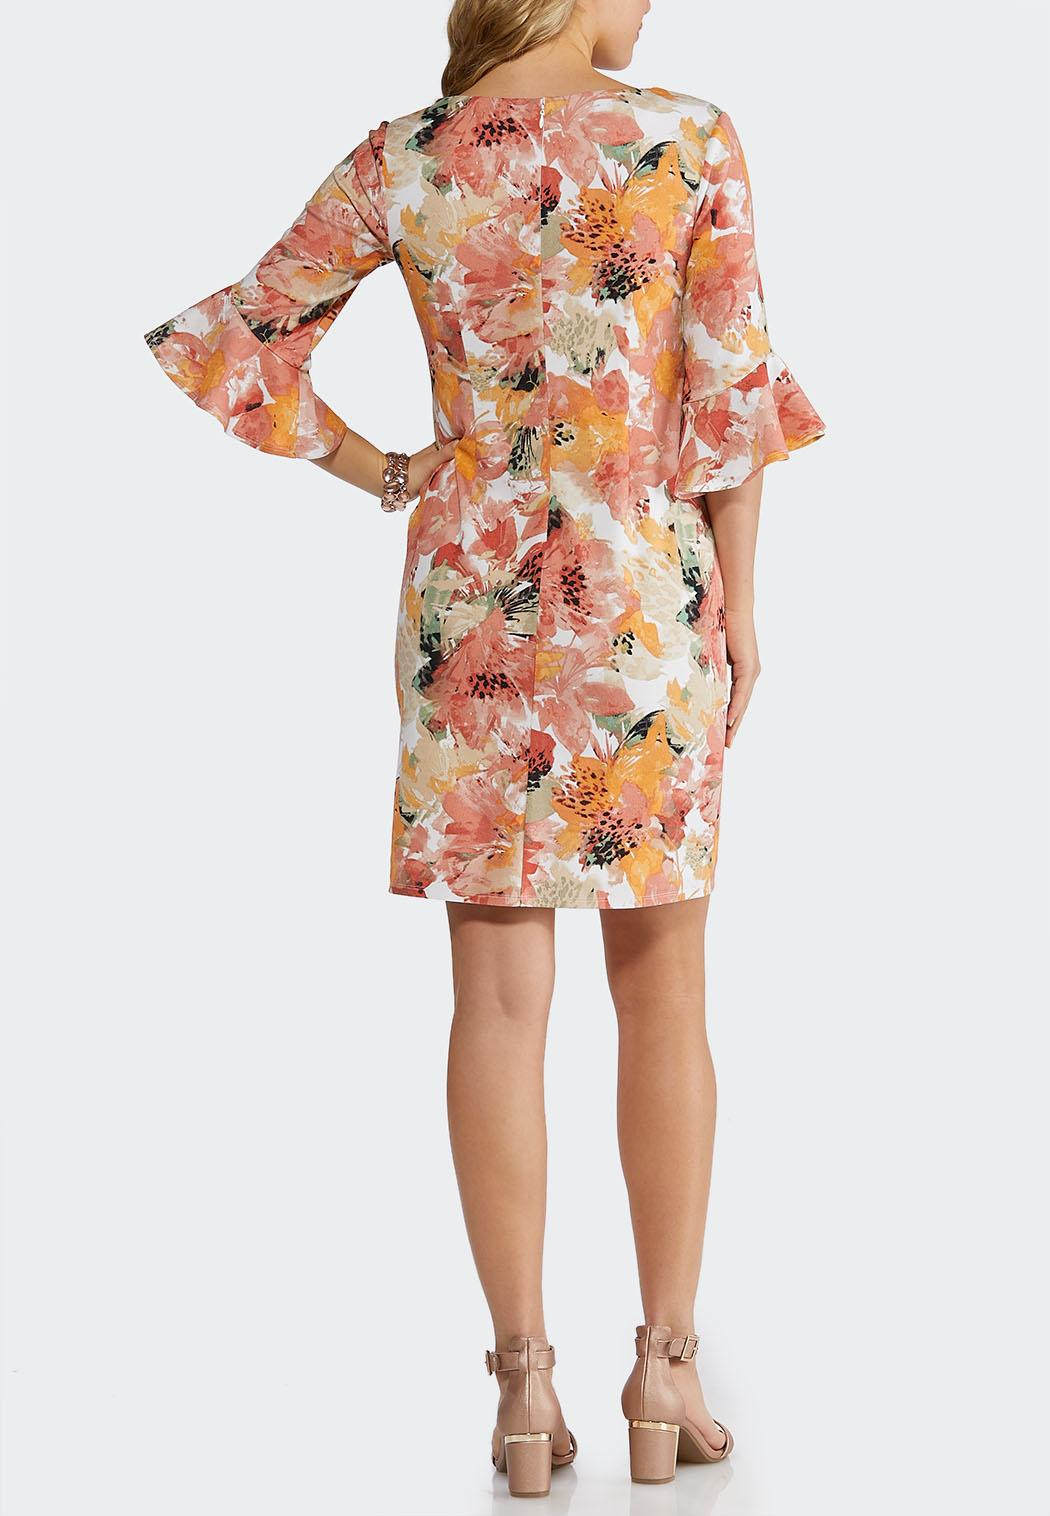 bfd9c8d29cdc2 Plus Size Shell Pink Floral Dress Plus Sizes Cato Fashions